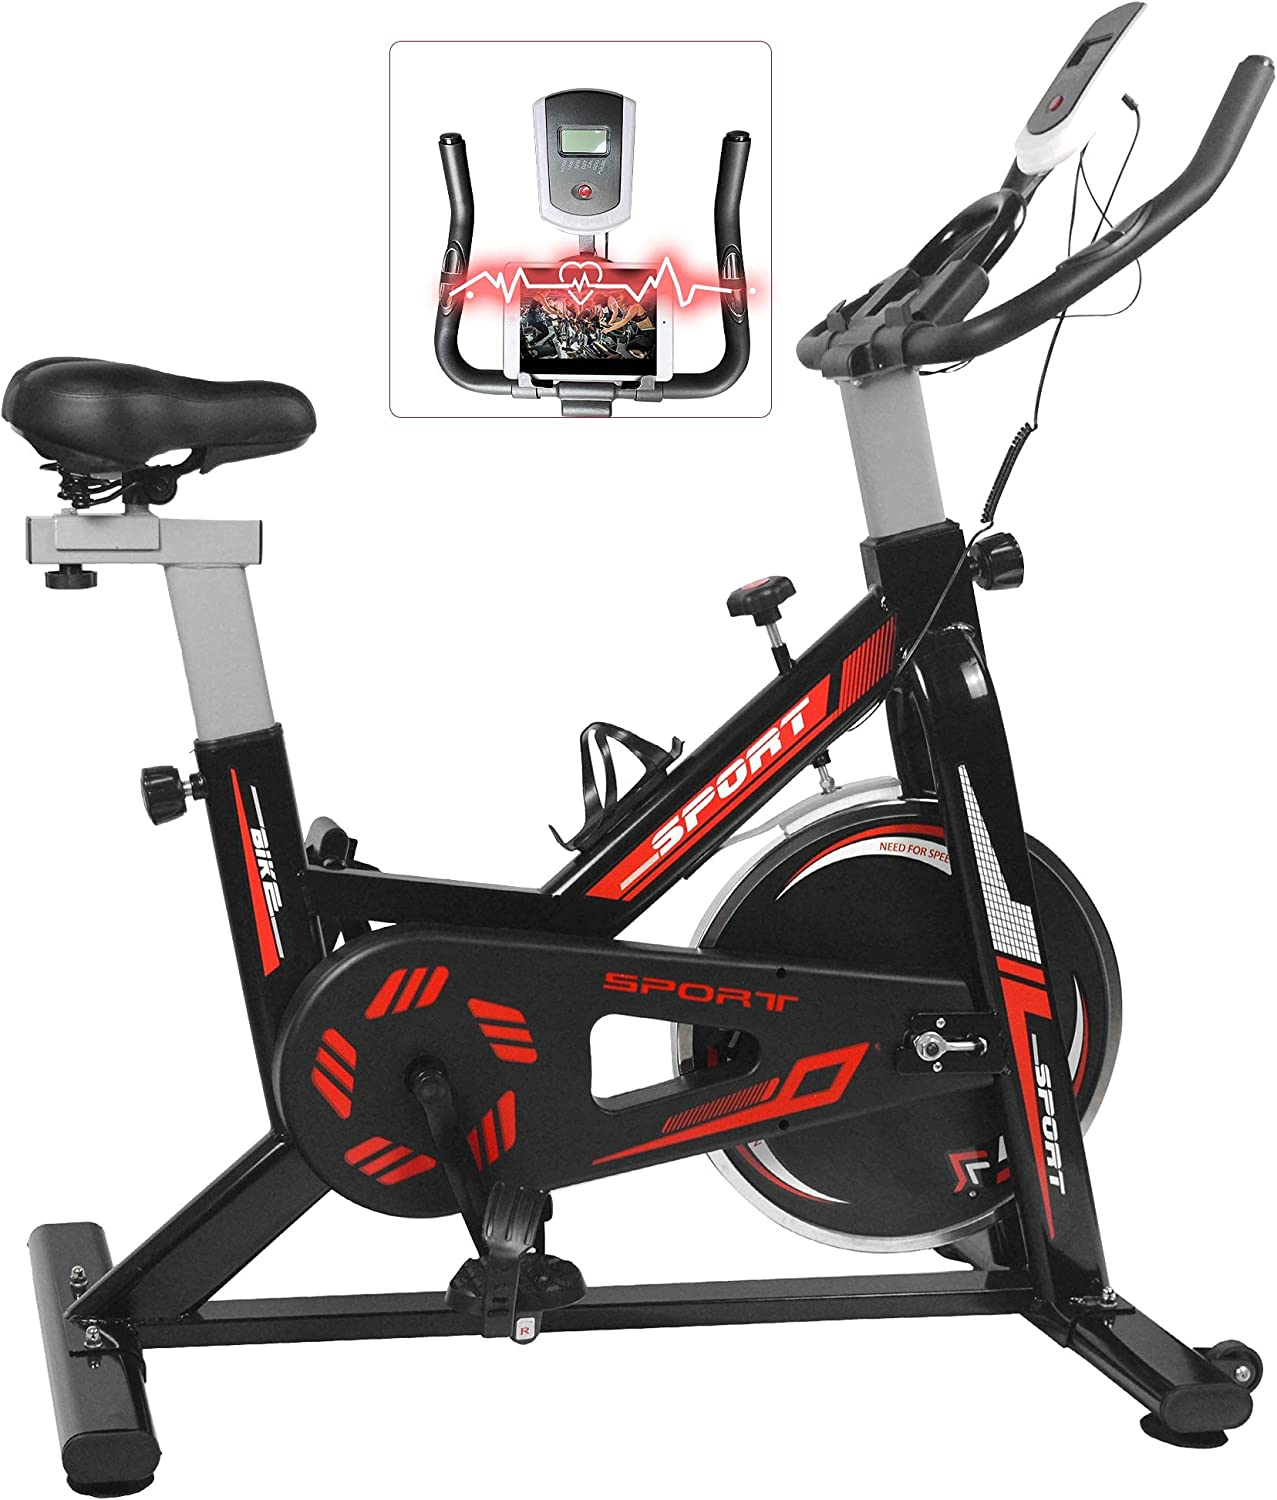 Exercise Bike Stationary Indoor Cycling Driv Belt Magnetic High quality new Fresno Mall